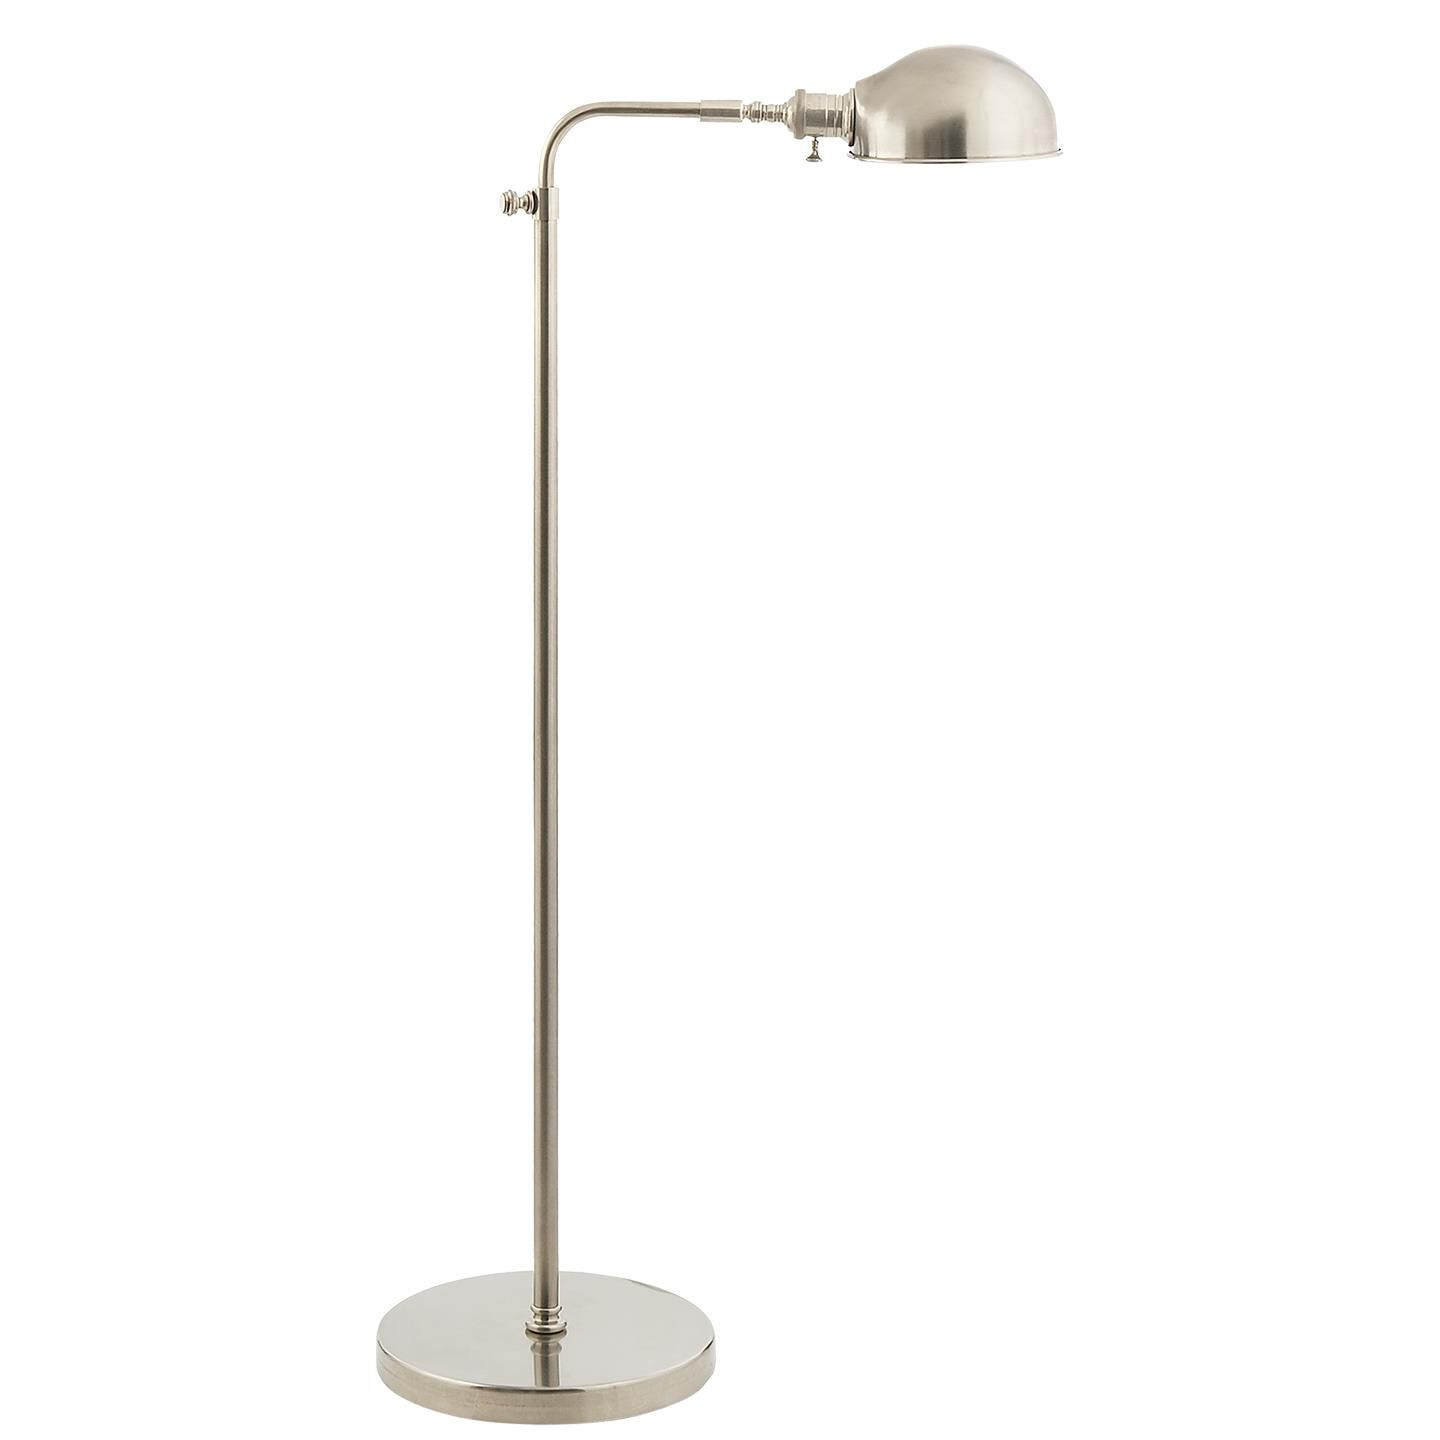 Visual Comfort and Co. Studio Vc Old Pharmacy Floor 36 Inch Reading Lamp Old Pharmacy Floor - S 1100AN - Transitional Reading Lamp